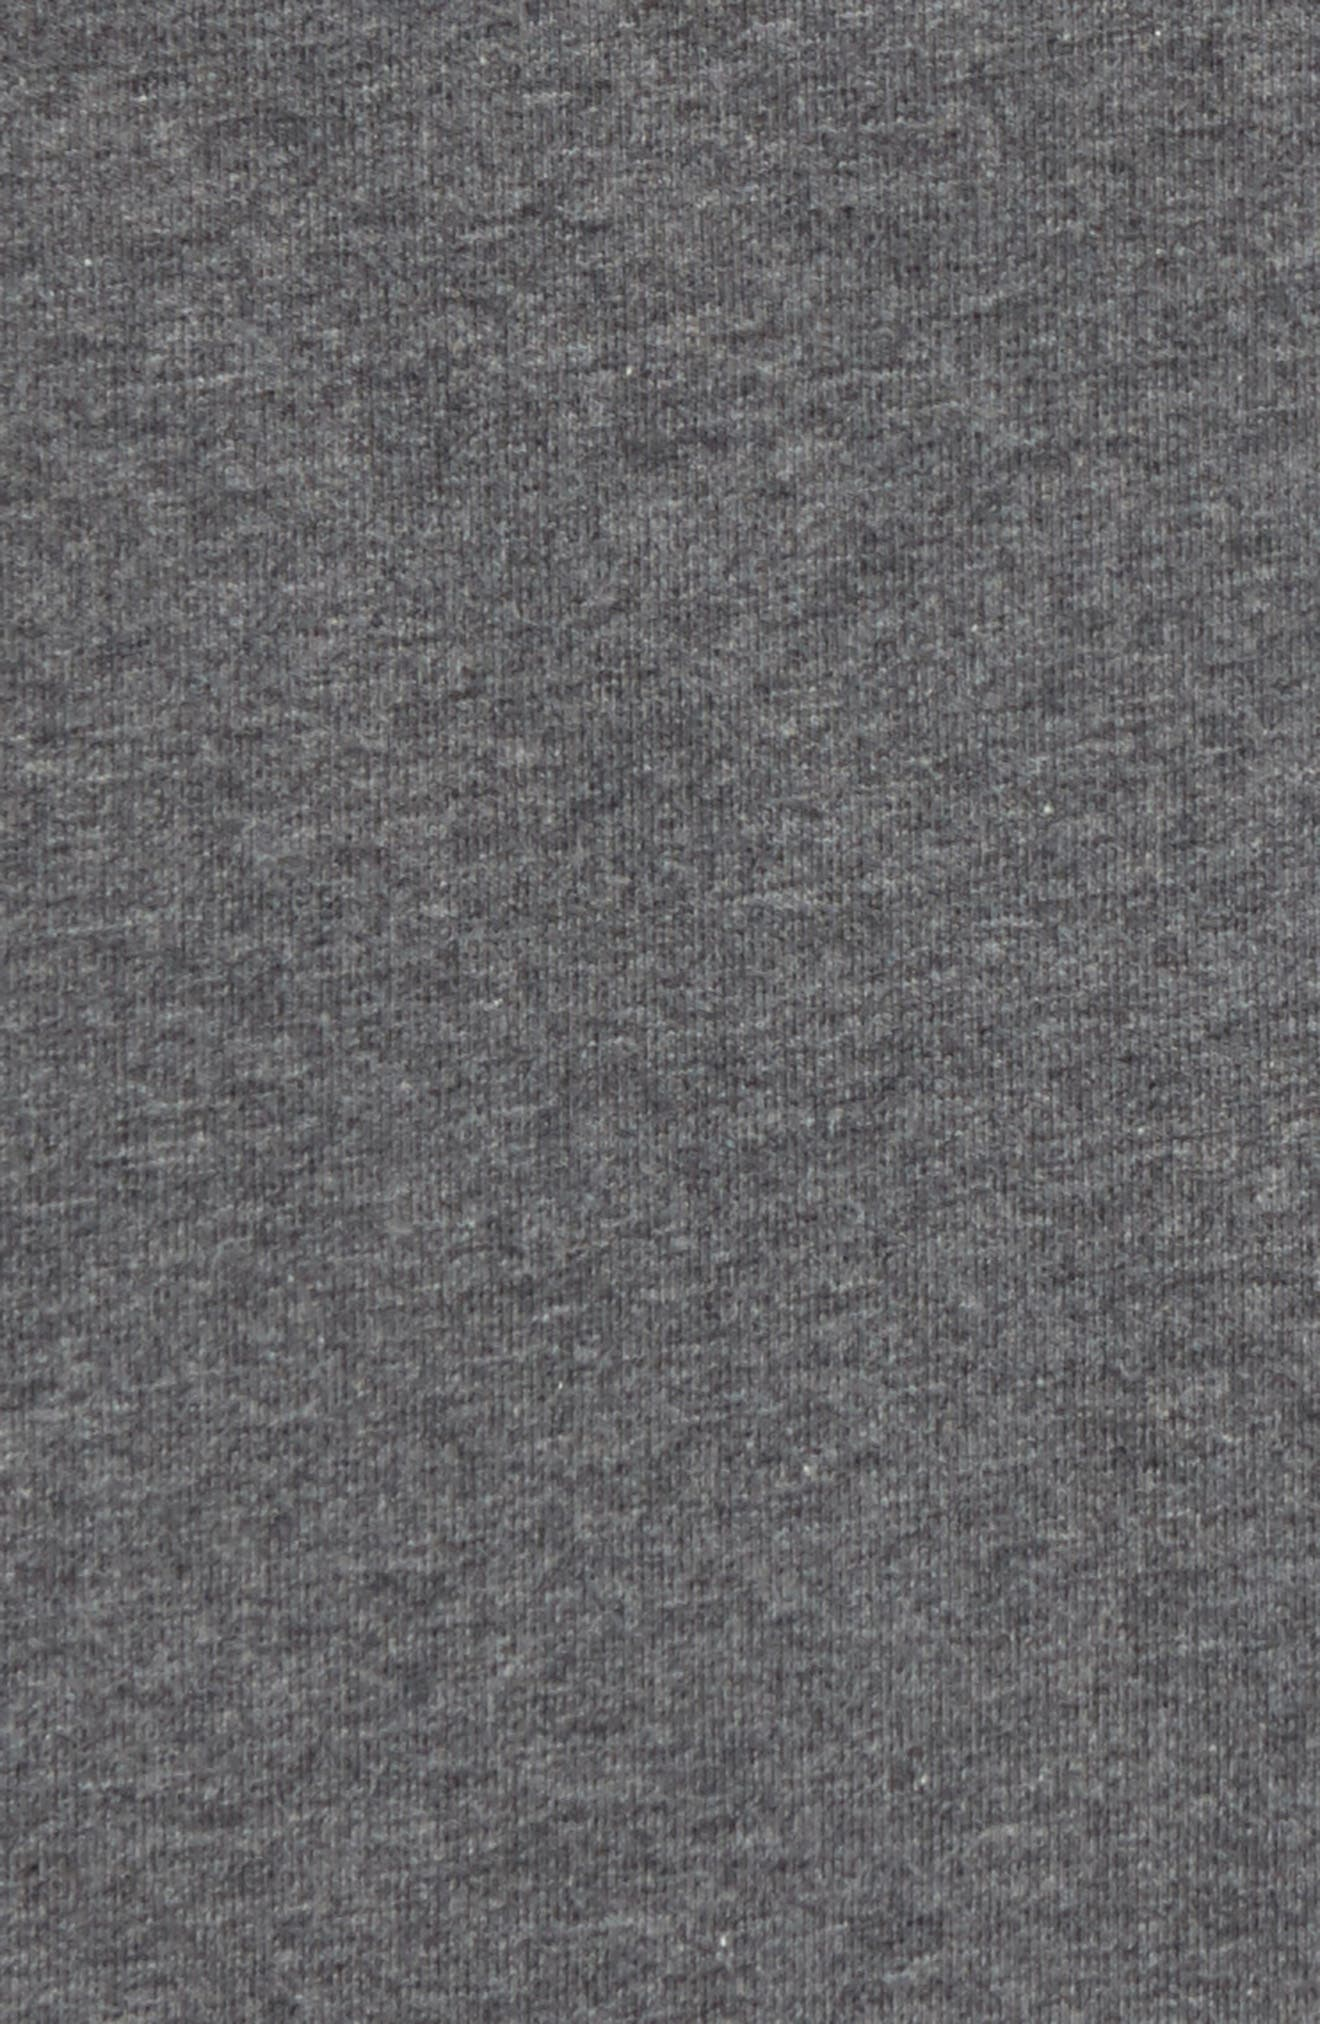 Heathered Long Camisole,                             Alternate thumbnail 2, color,                             Grey Charcoal Heather